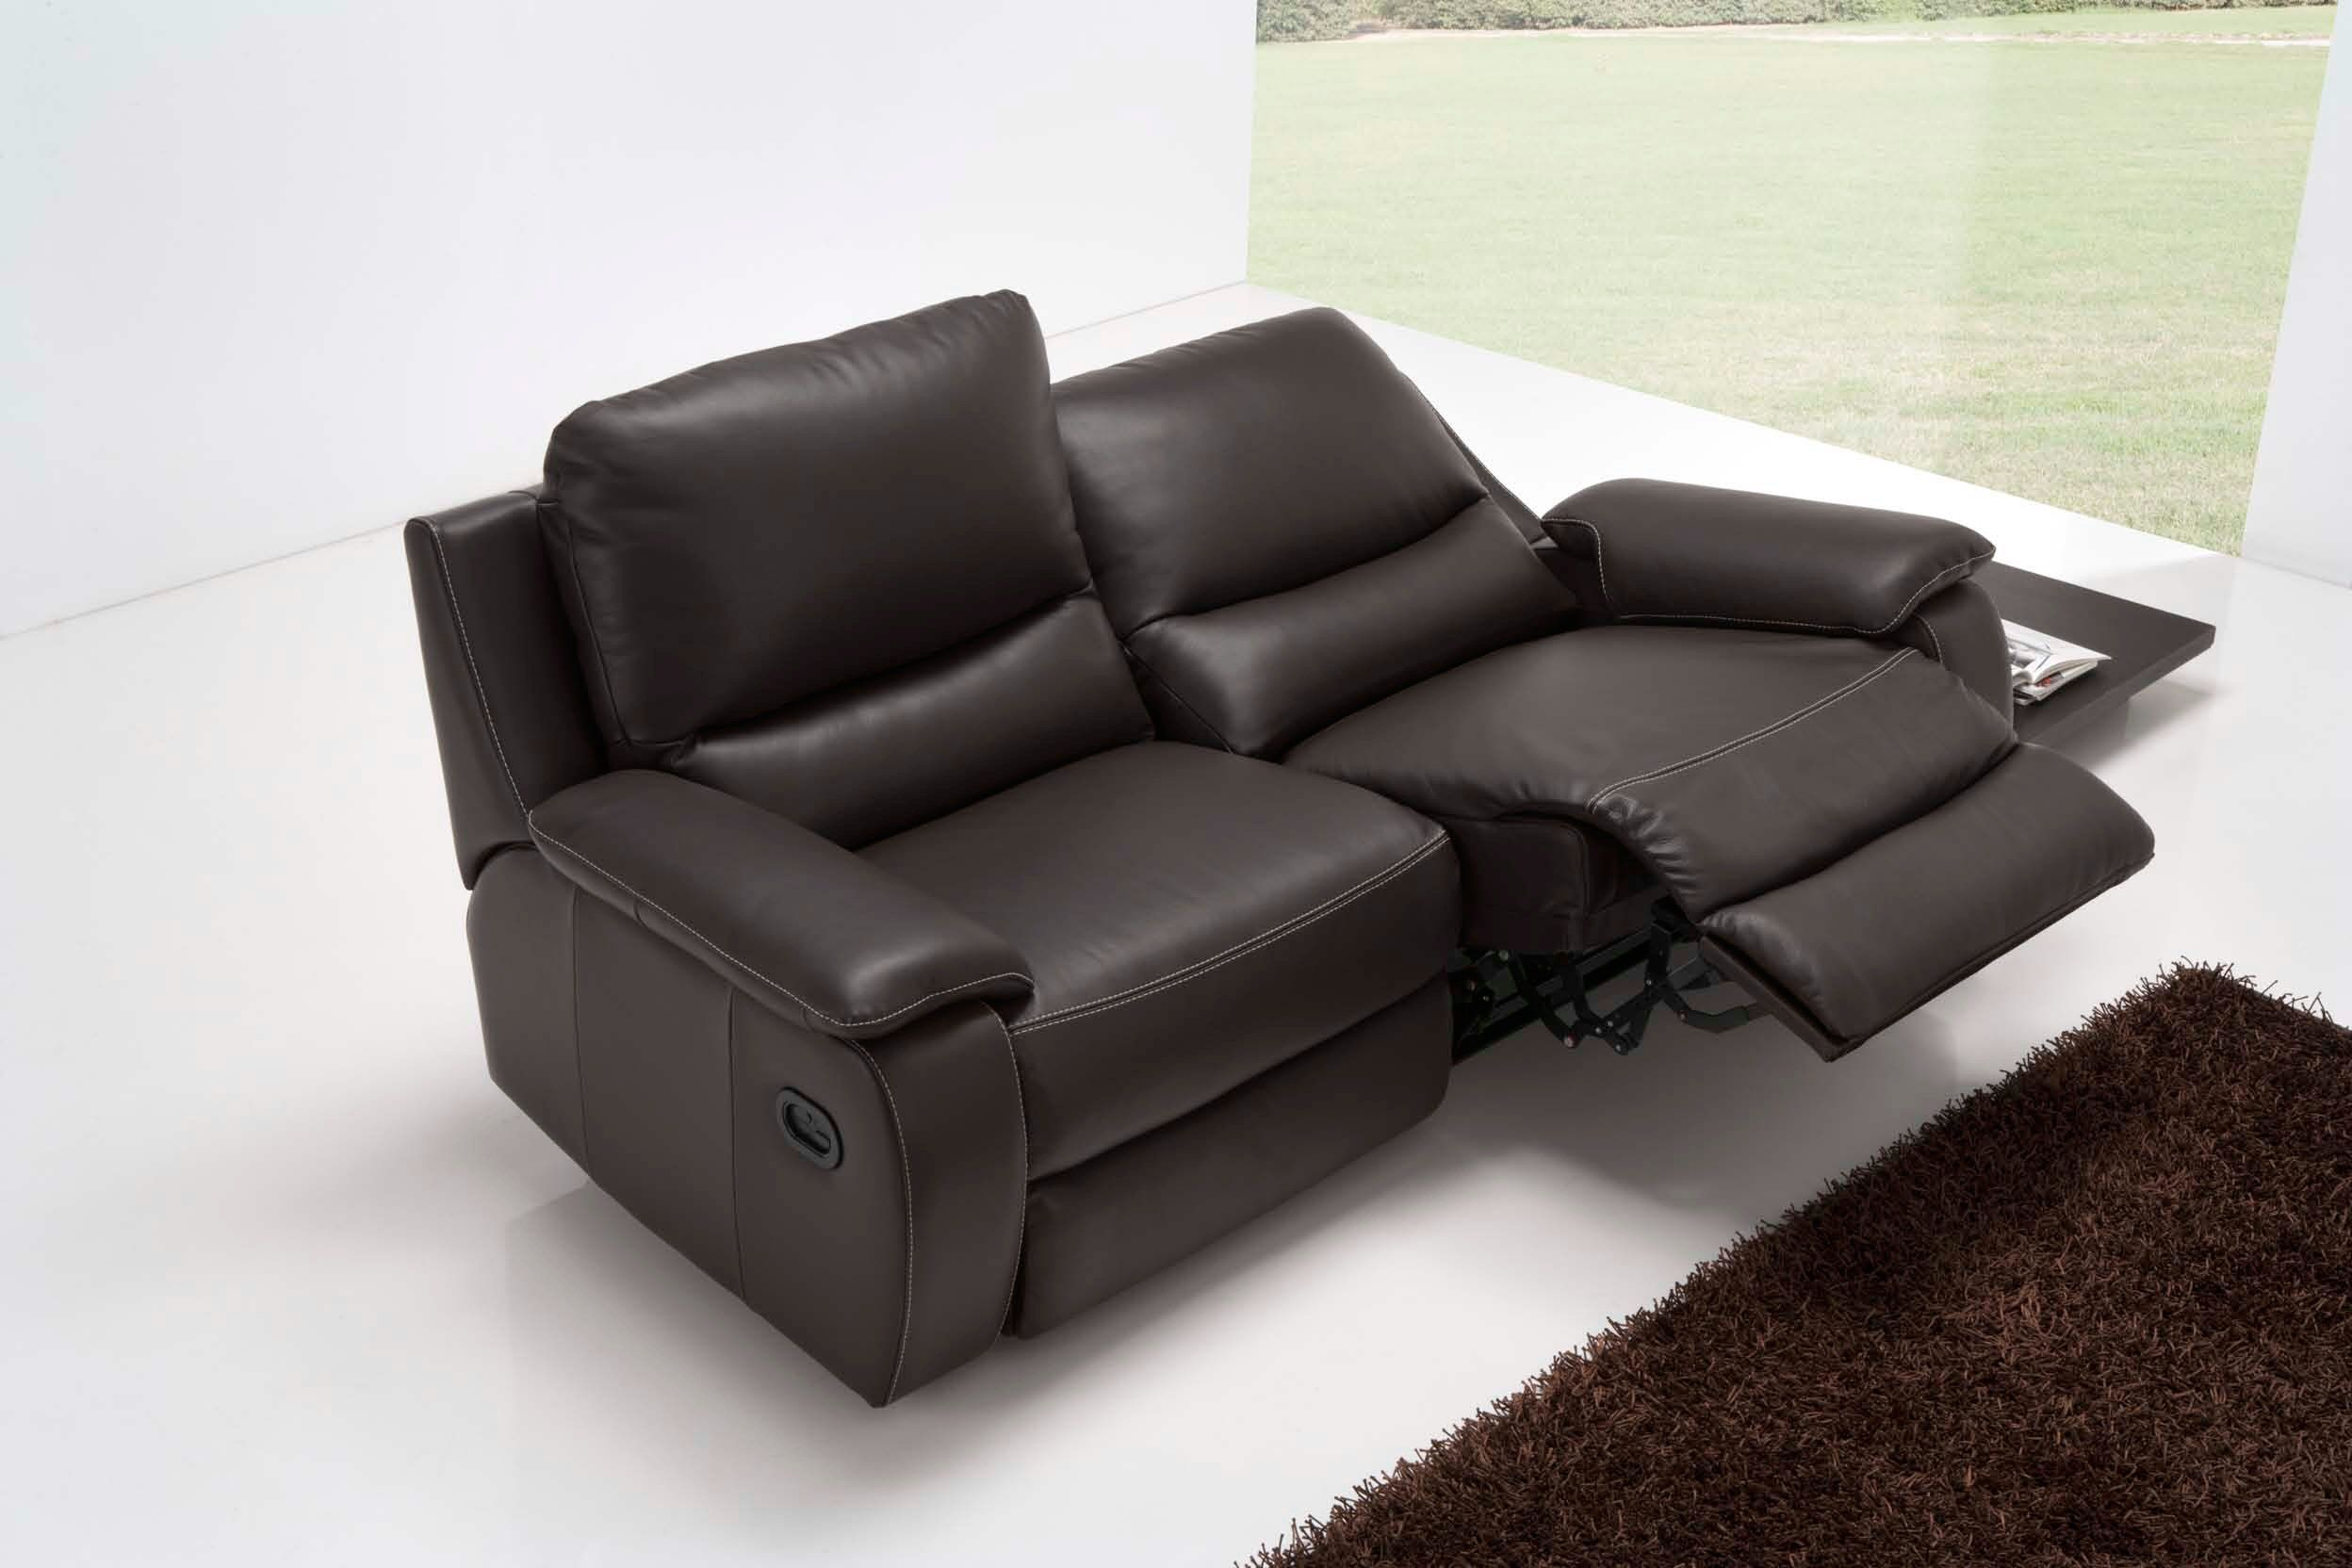 Cool Two Seat Recliner Couch , Elegant Two Seat Recliner Couch 92 On Sofas  And Couches